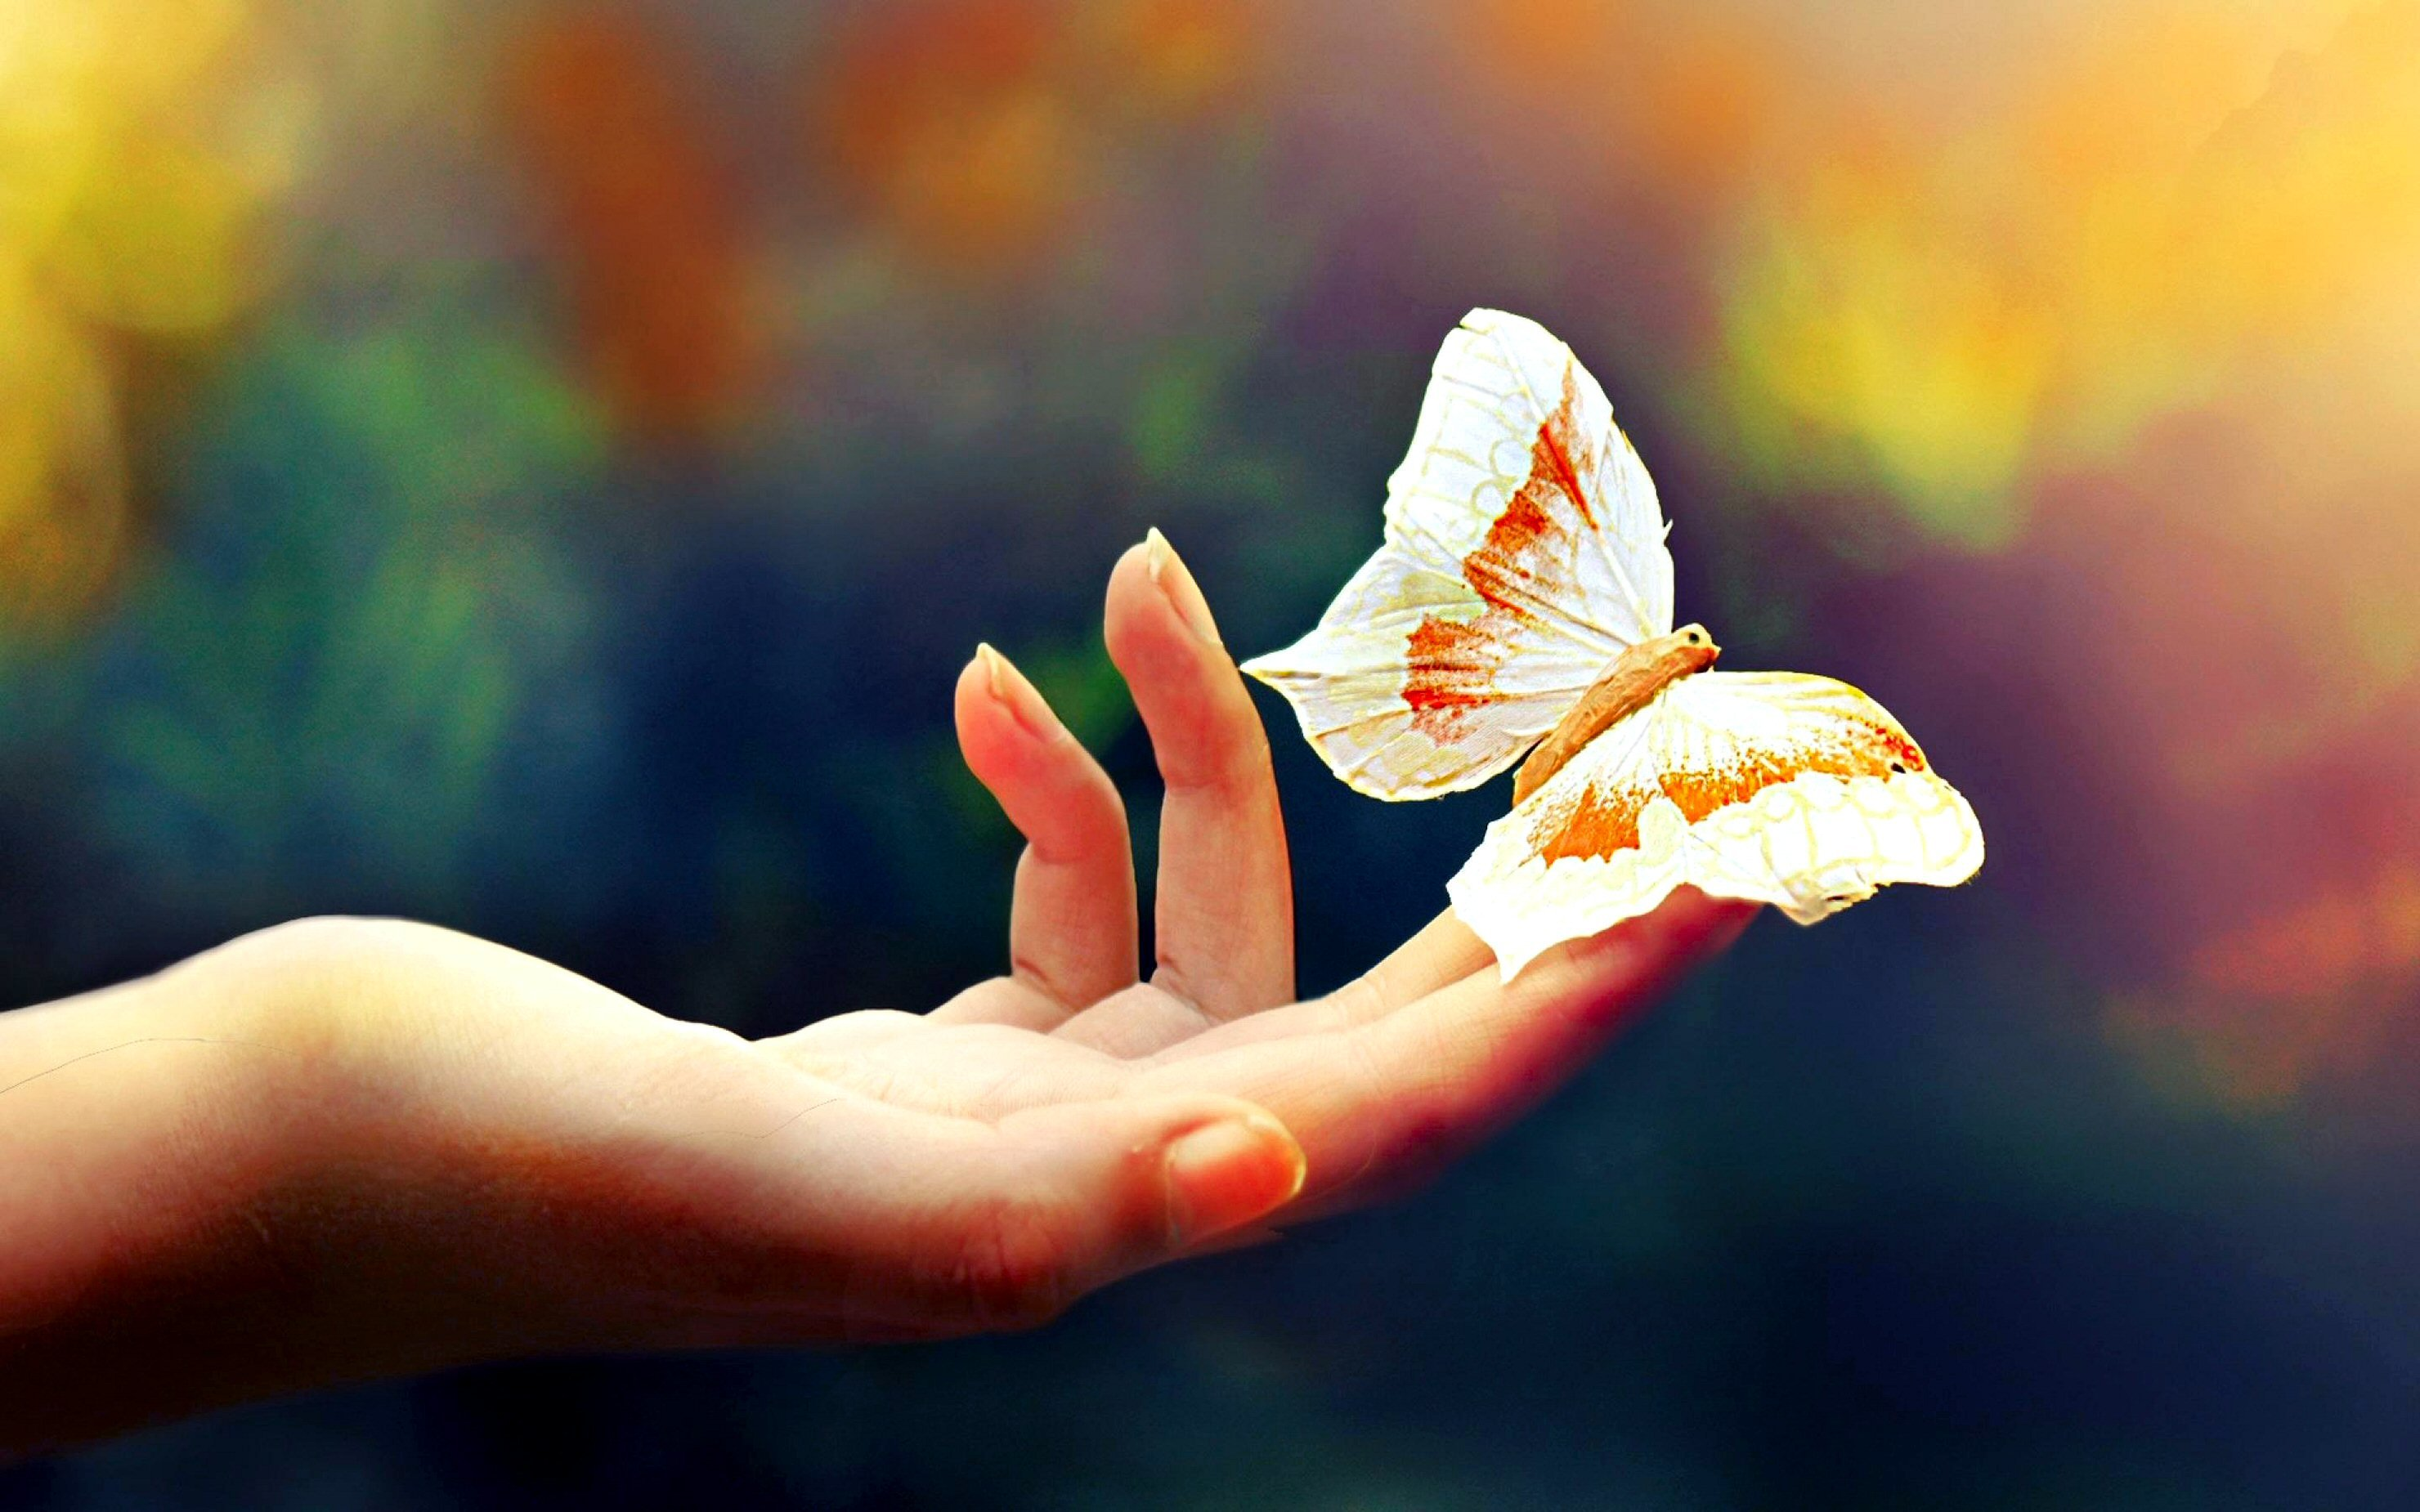 Butterfly Wallpapers Download Cute Colorful HD Desktop 2960x1850